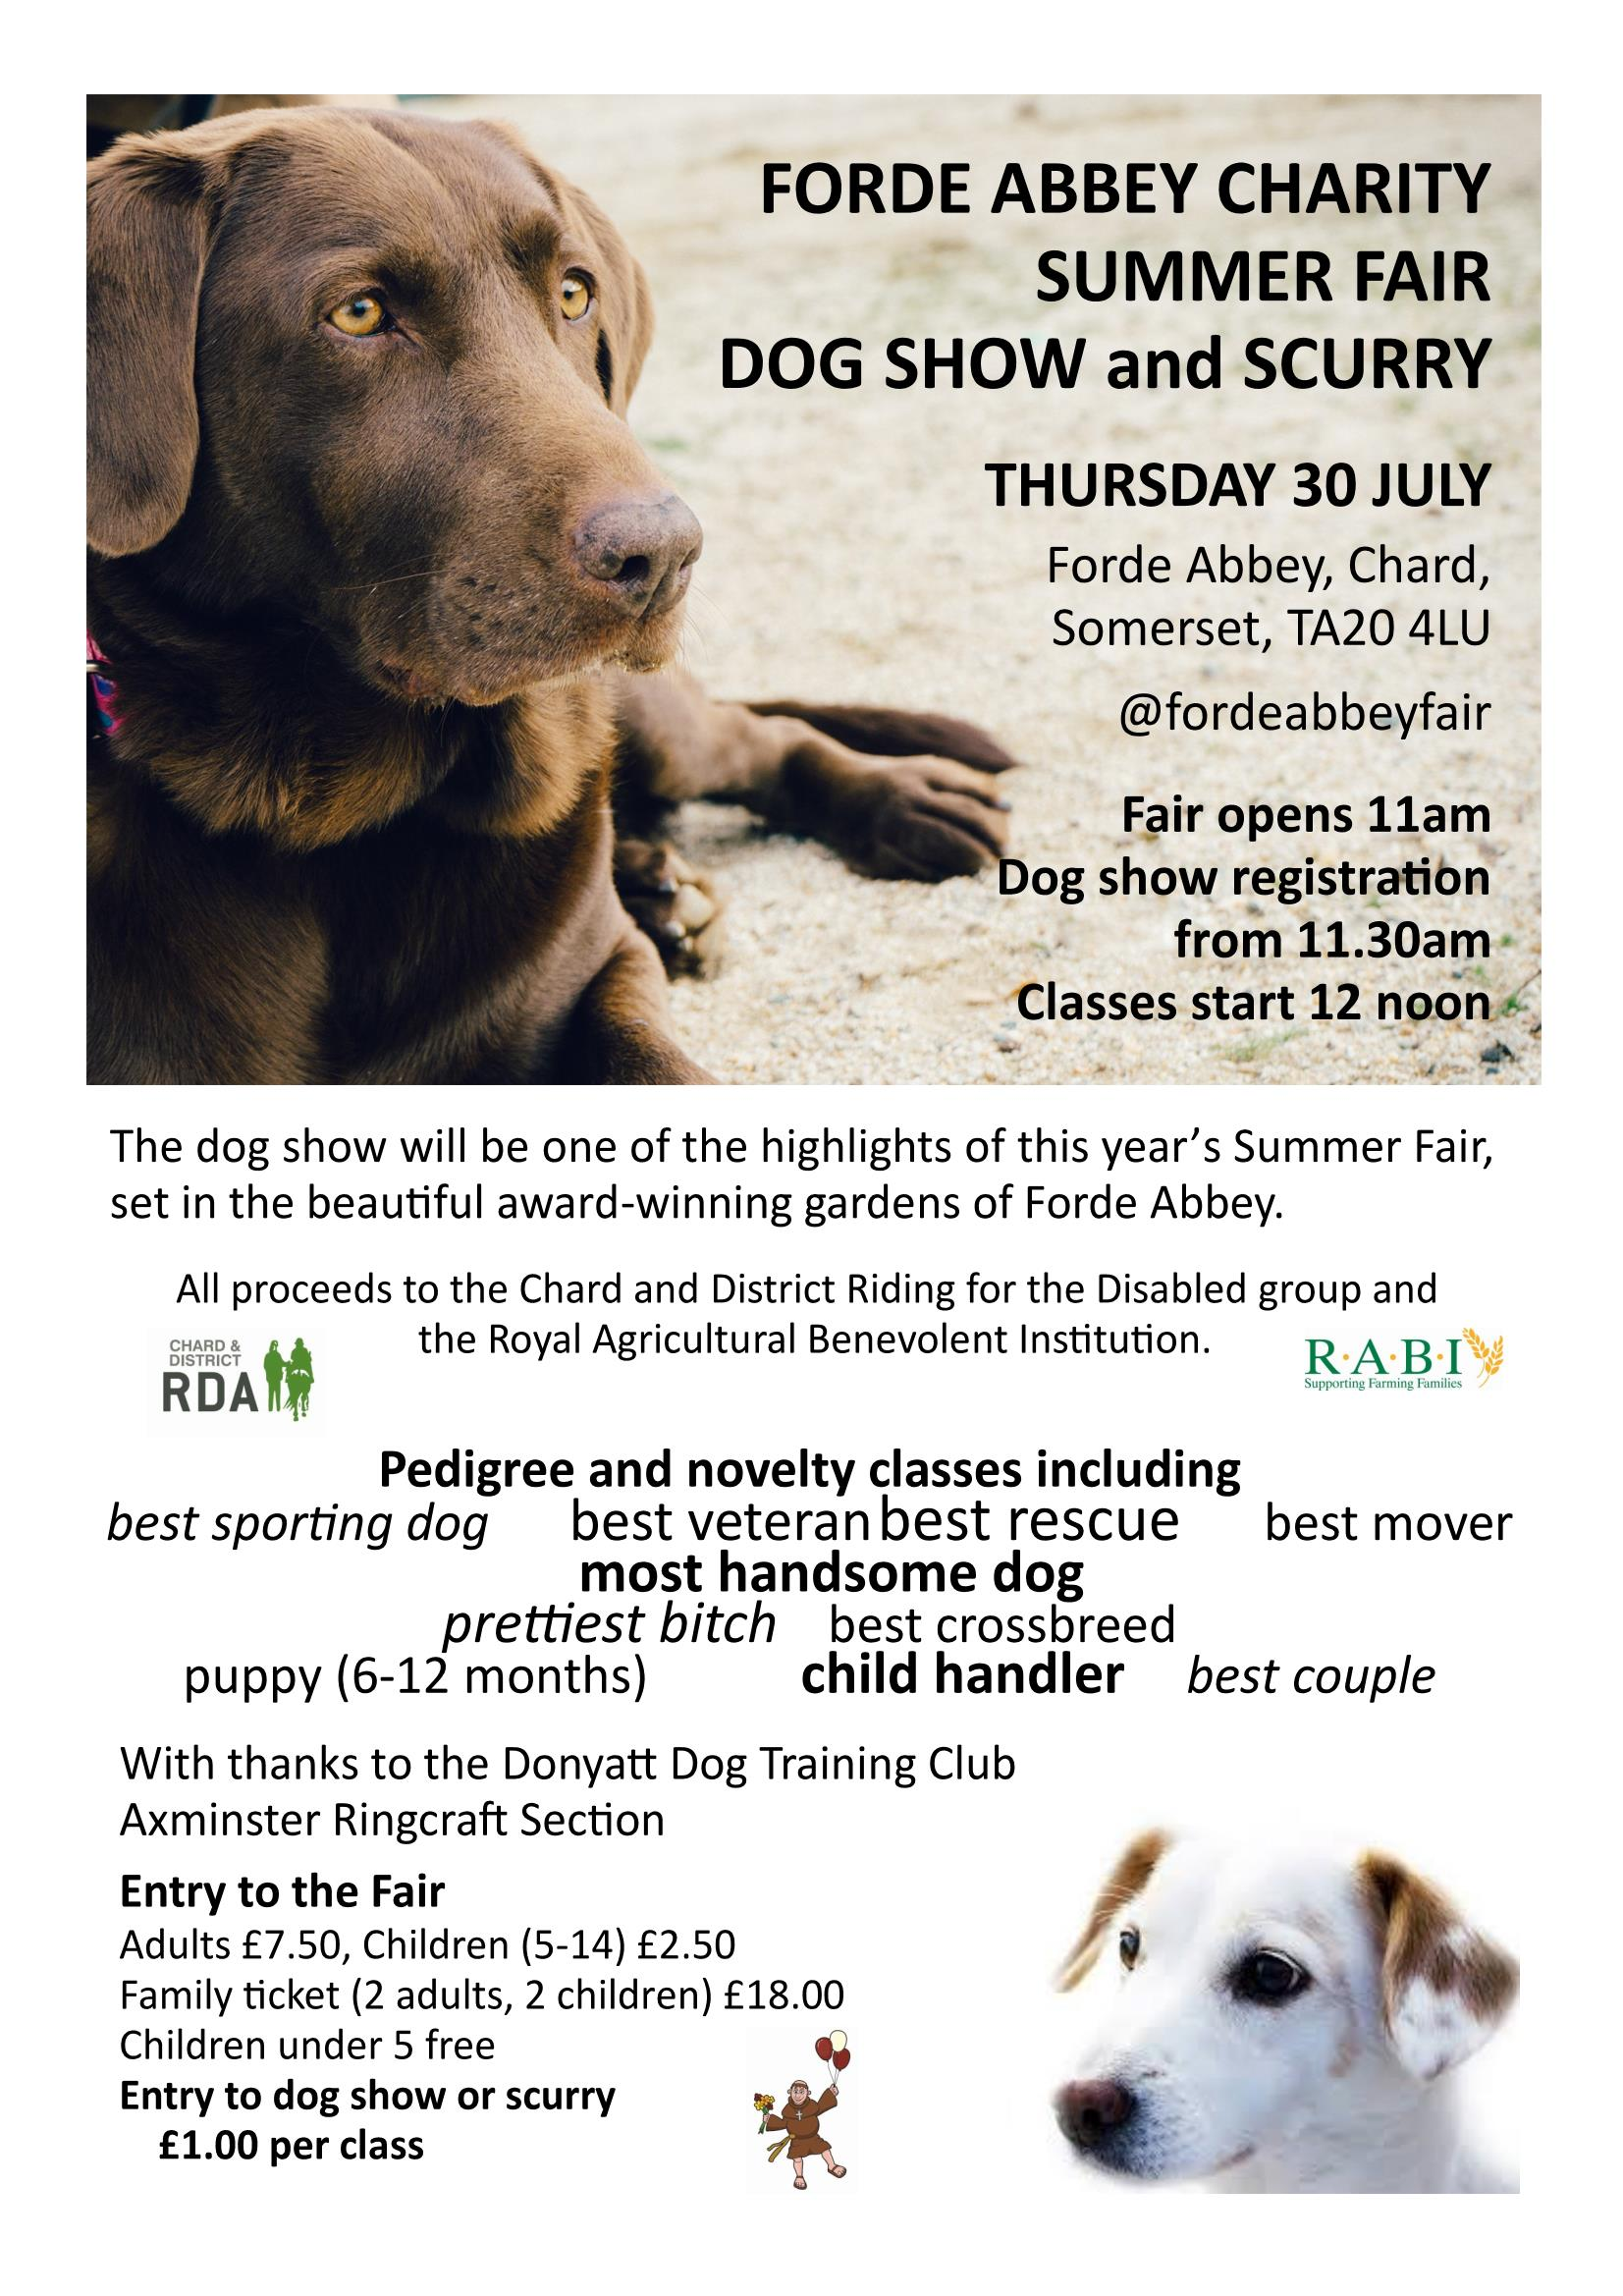 Charity dog show at Forde Abbey Summer Fair